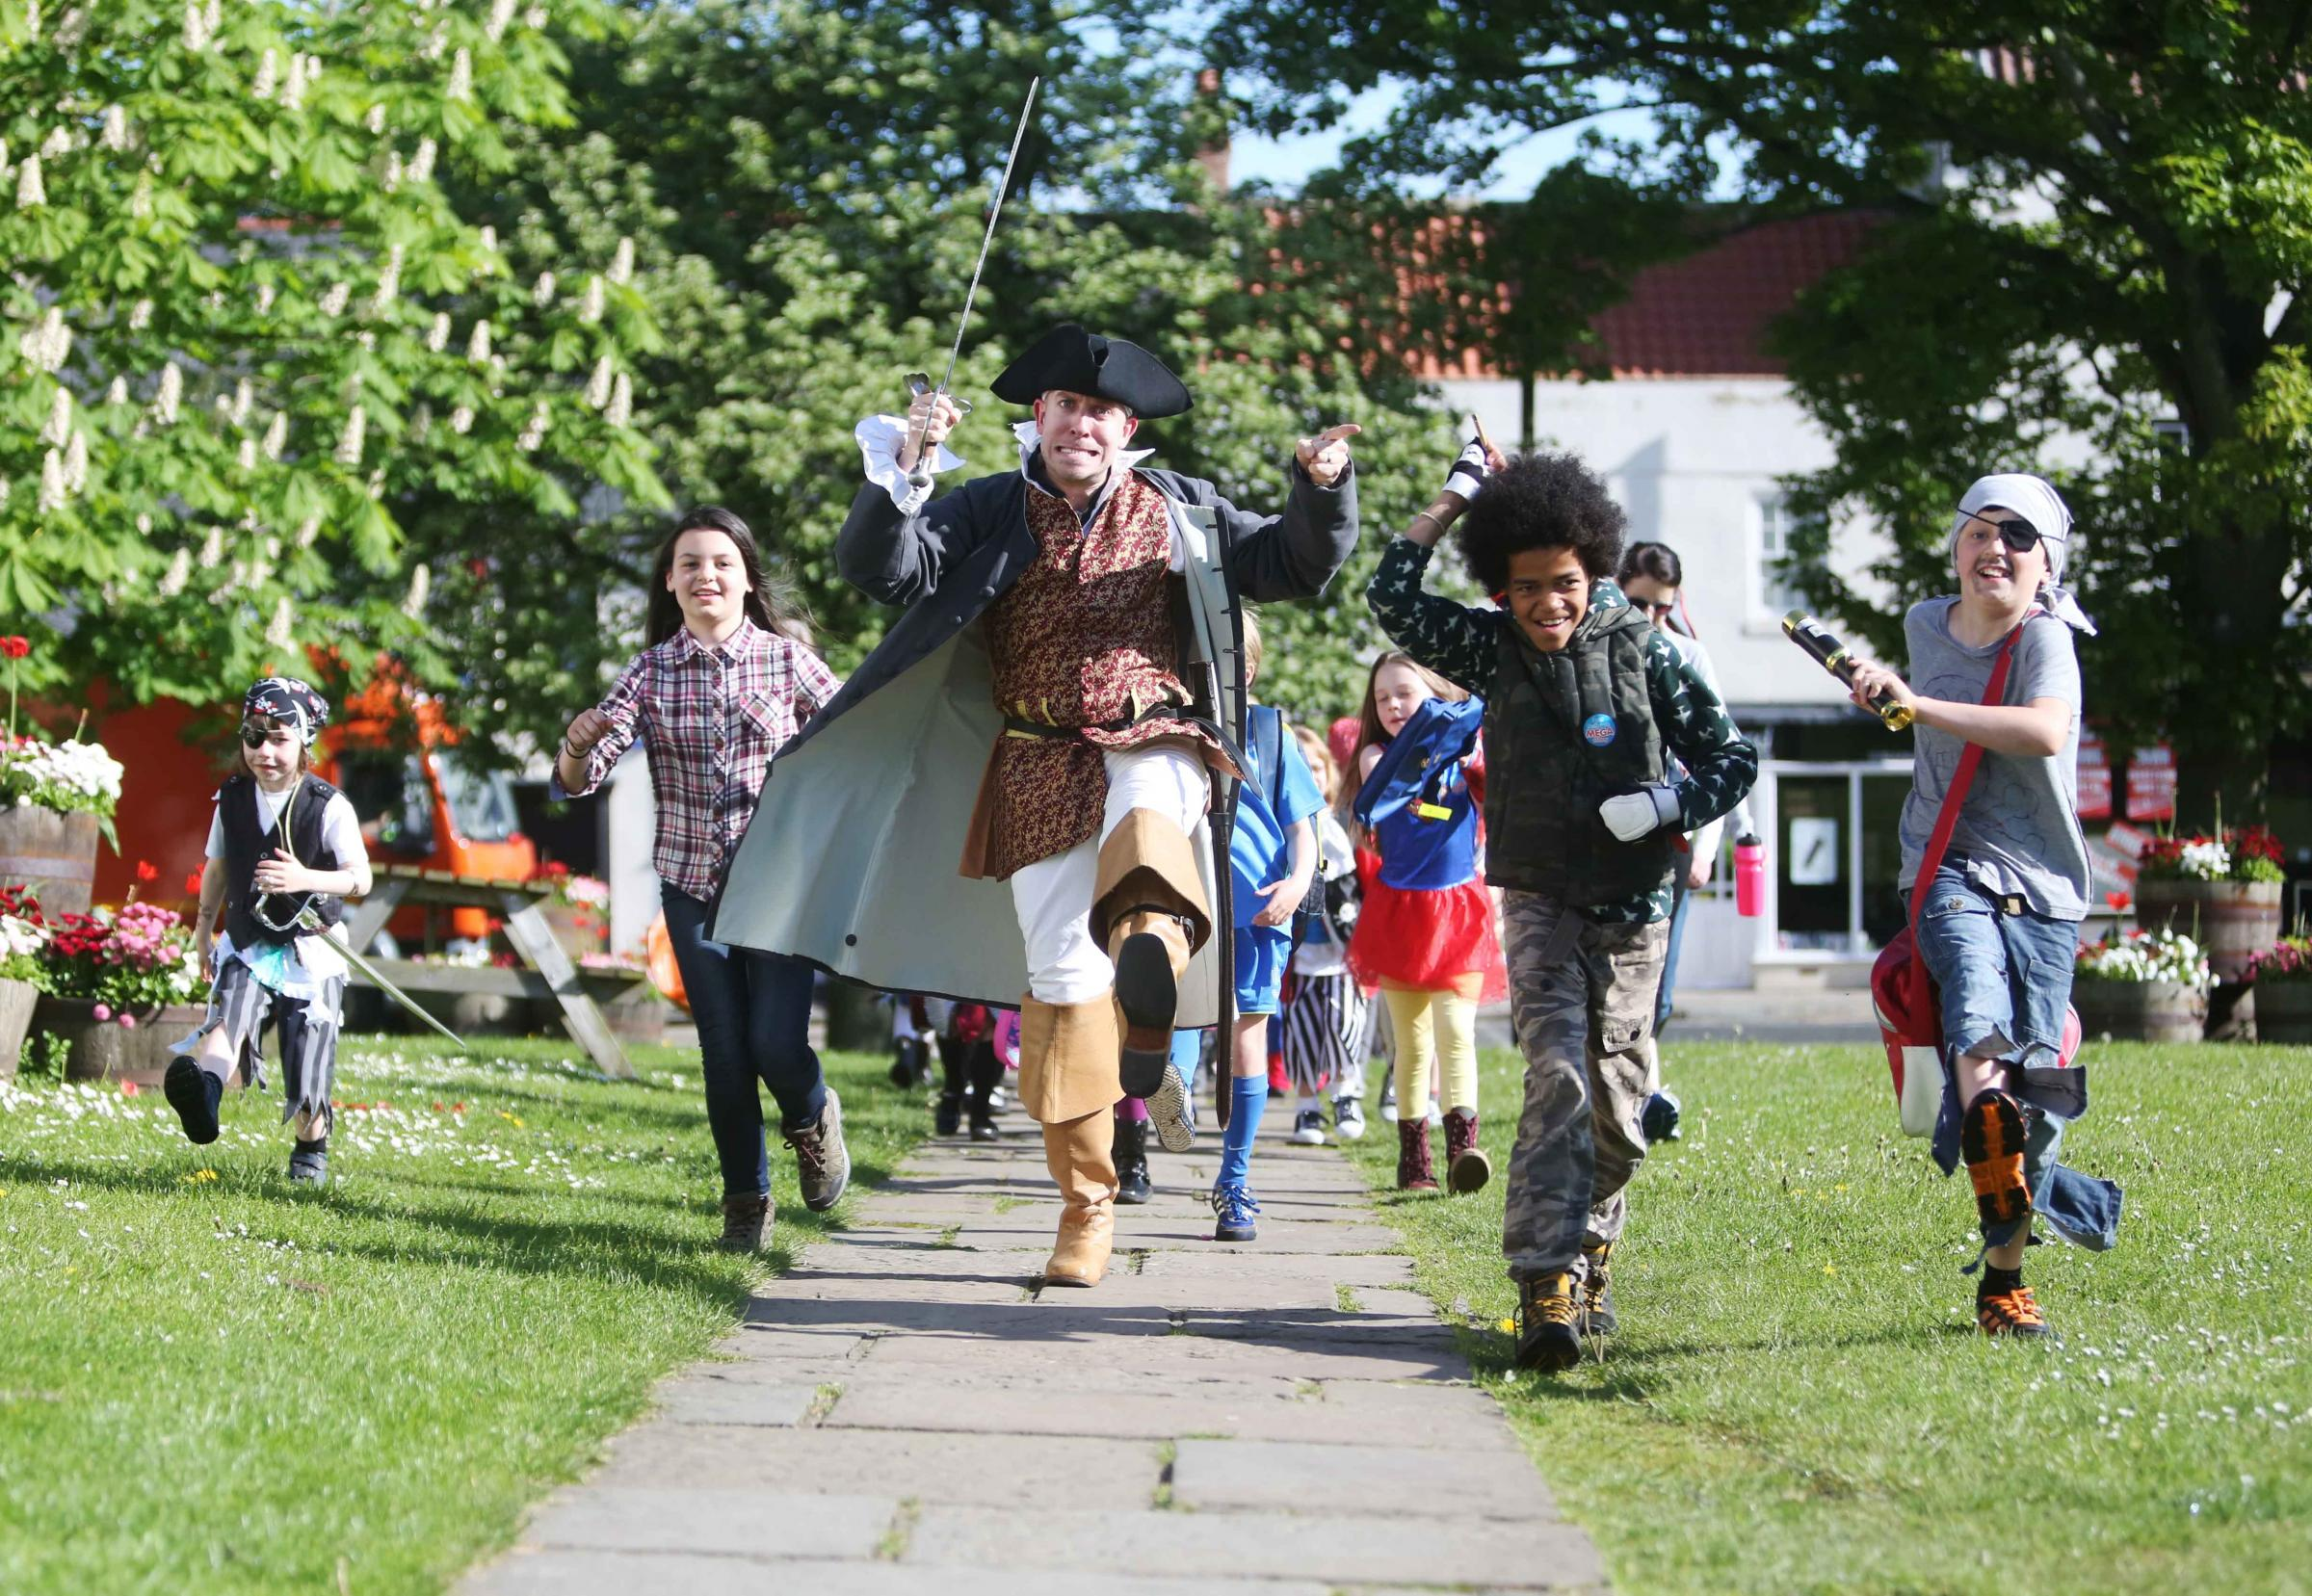 THEMED WALK: Pirate Dave Elliot Cooper from Histrionics drama company with Harry Gething, six, Elise Cabanes-Bouveng, 11, Joshua Delapanosta and Daniel Turnbull, both ten